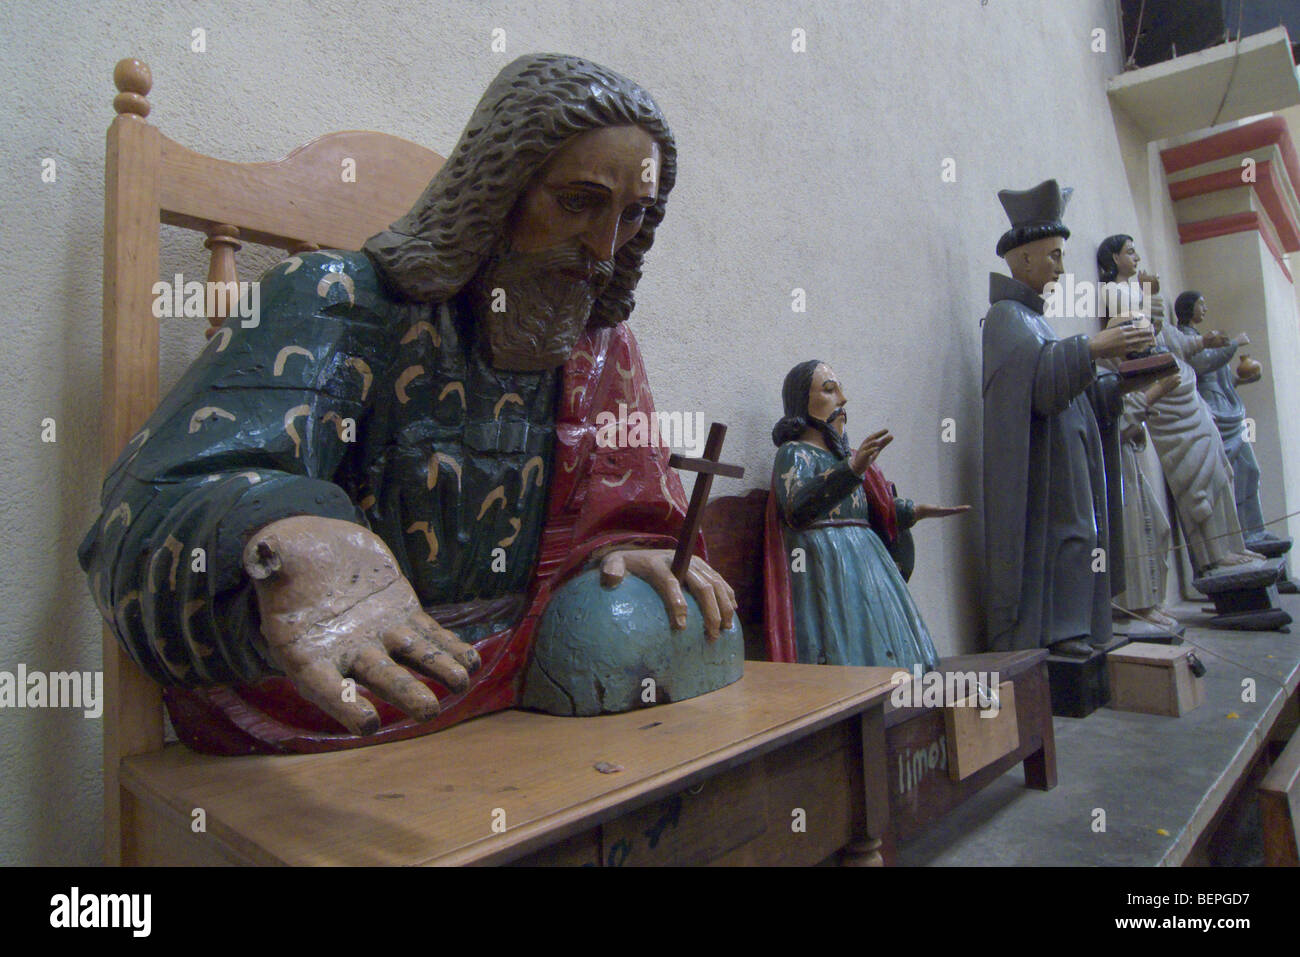 GUATEMALA Statues of Saints in the Catholic cathedral of Santiago de Atitlan. PHOTO BY SEAN SPRAGUE 2009 - Stock Image